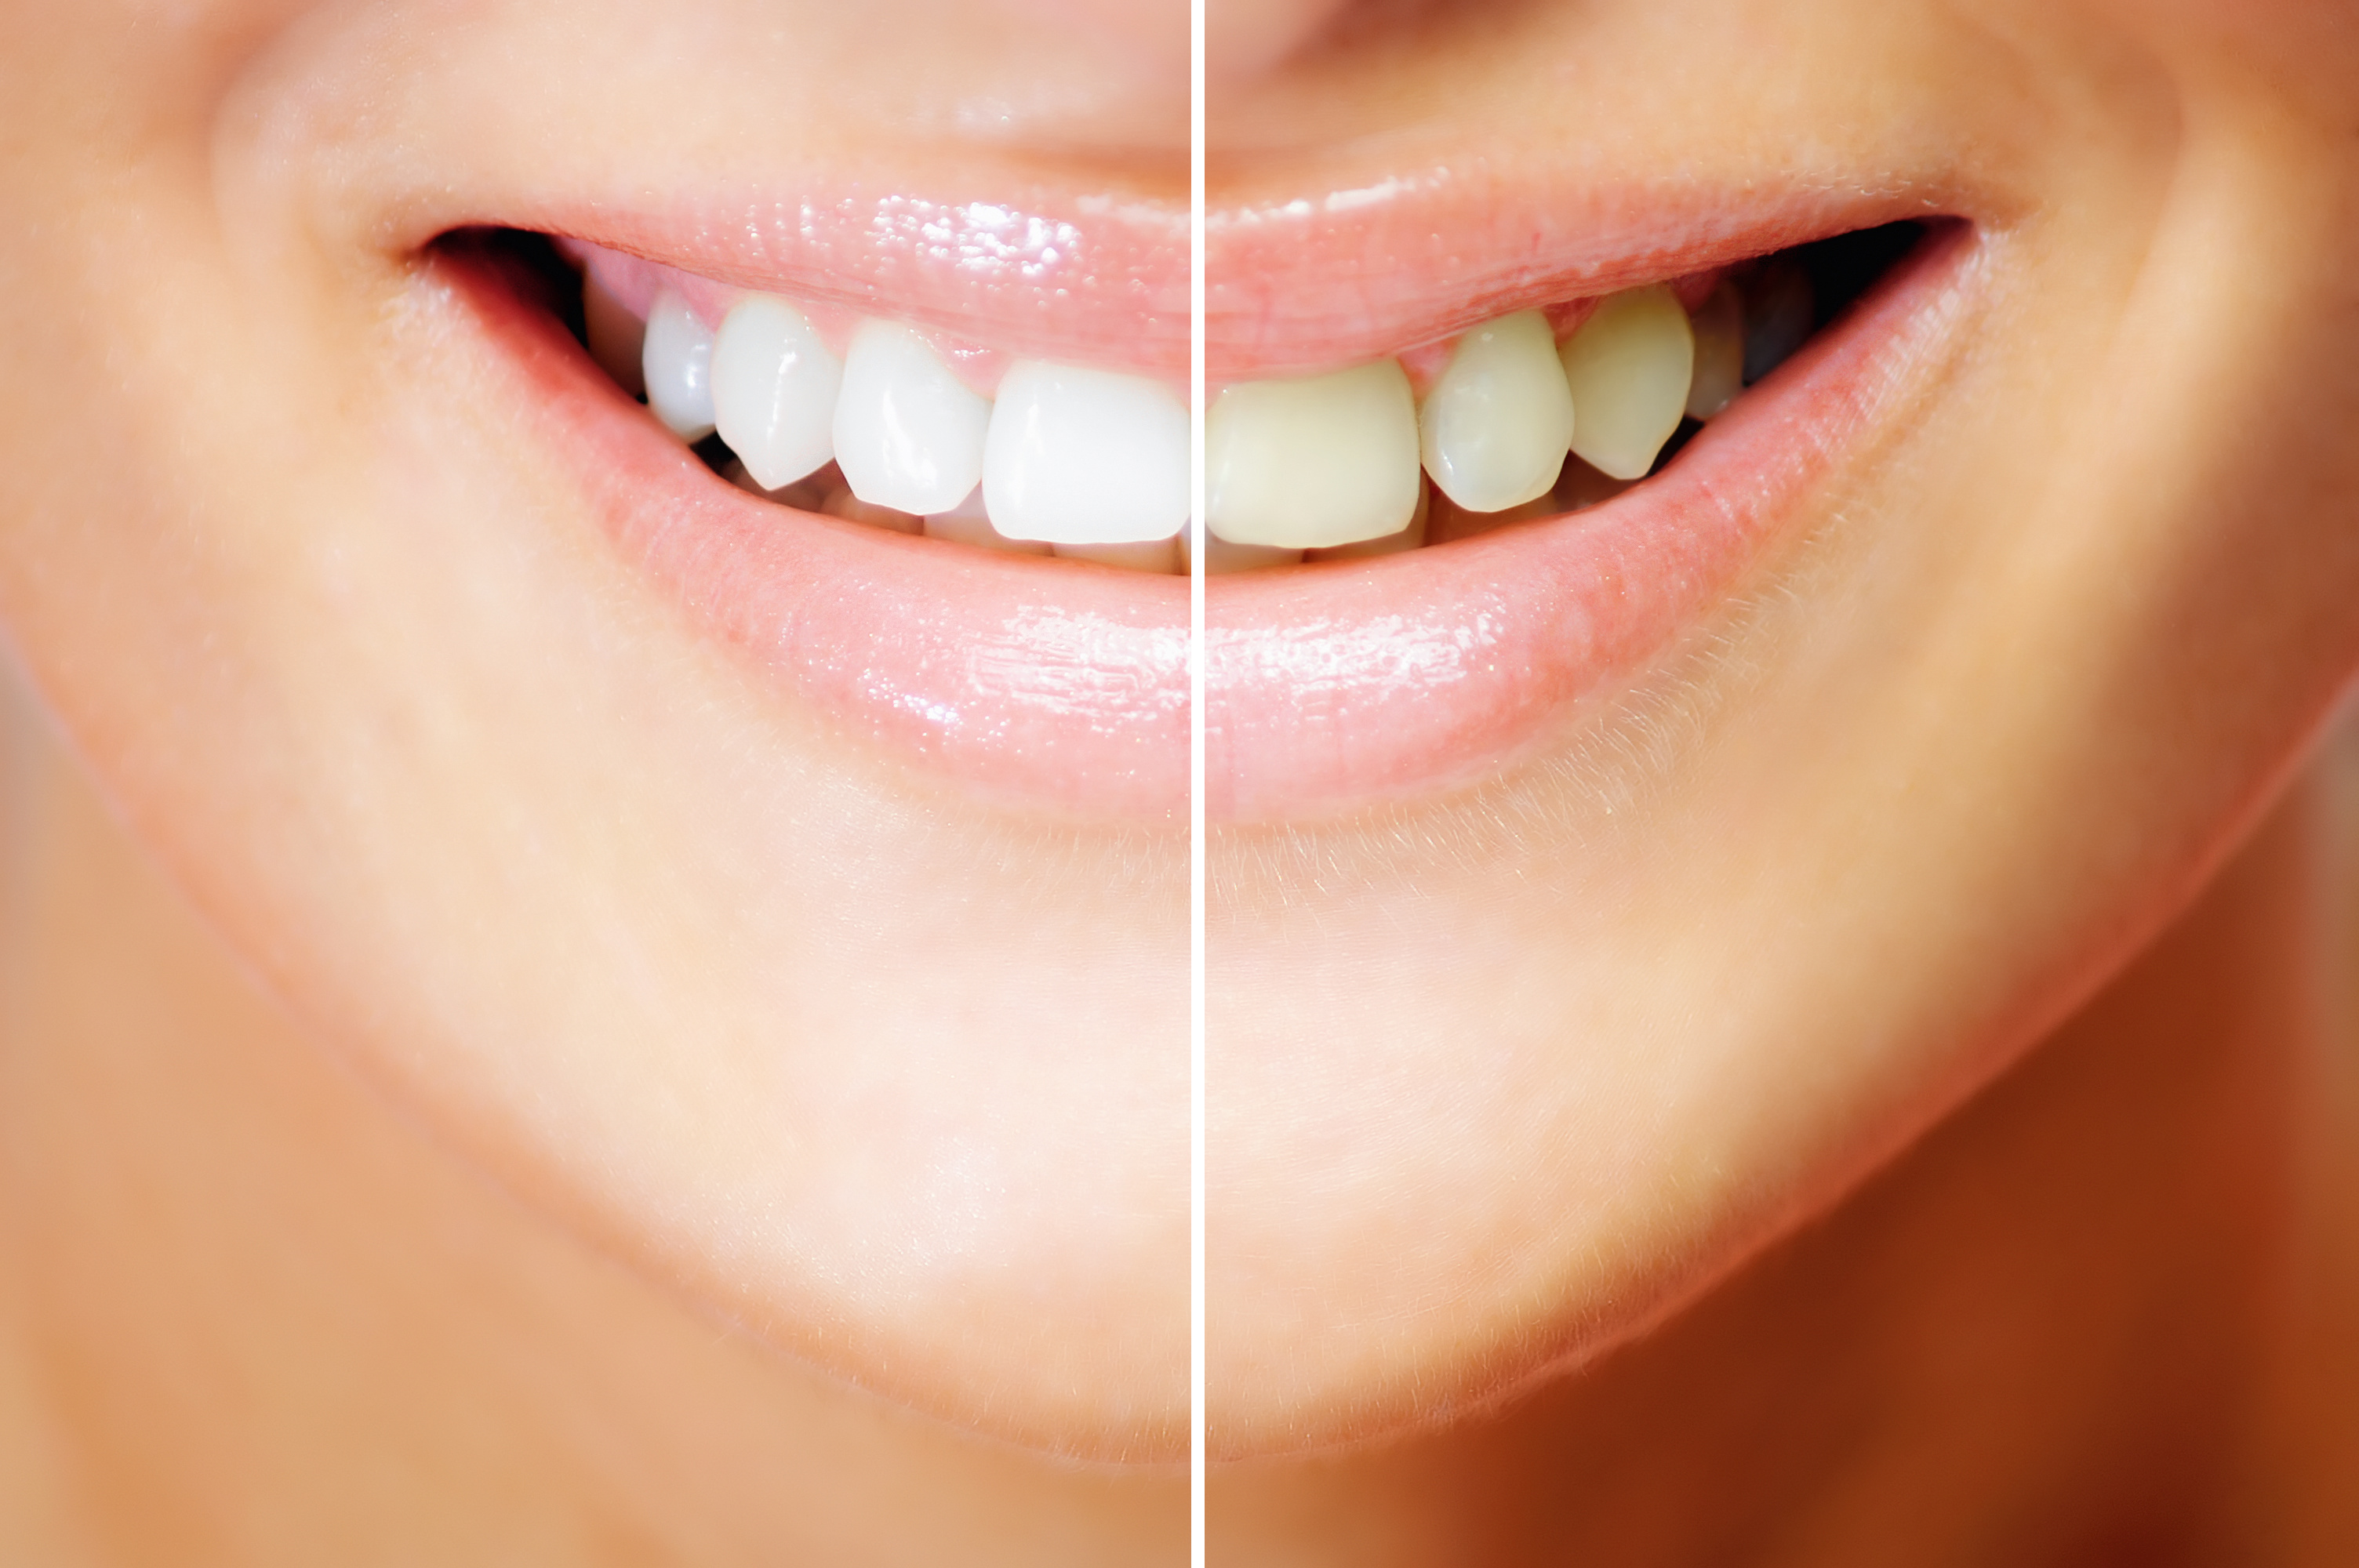 Are You A Good Candidate for Teeth Whitening?